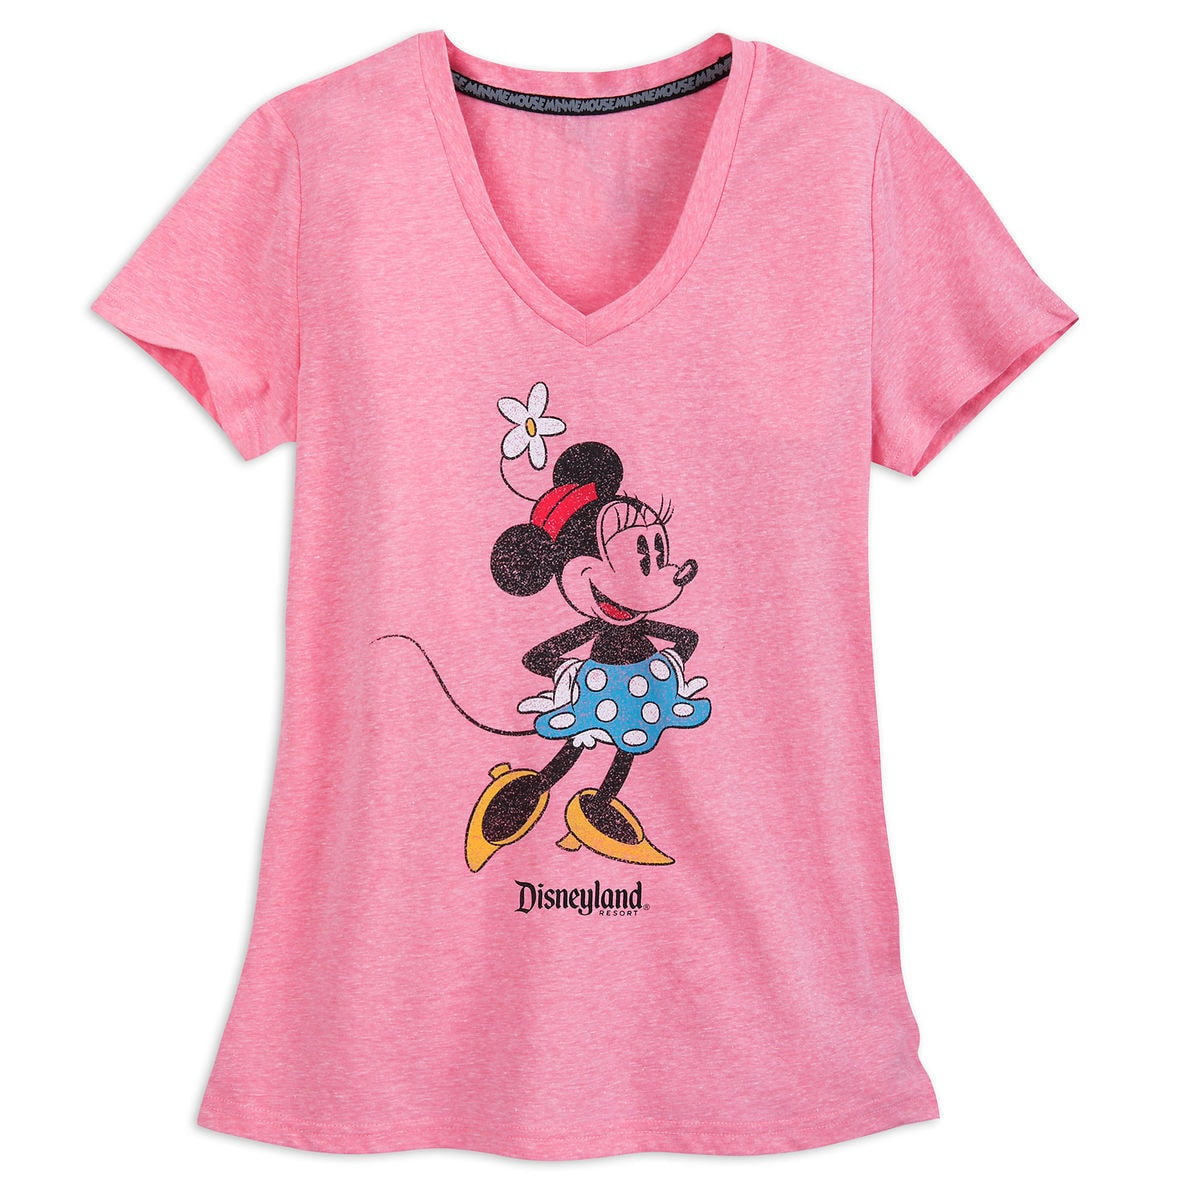 Minnie Mouse V Neck T Shirt For Women Disneyland Pink Shopdisney